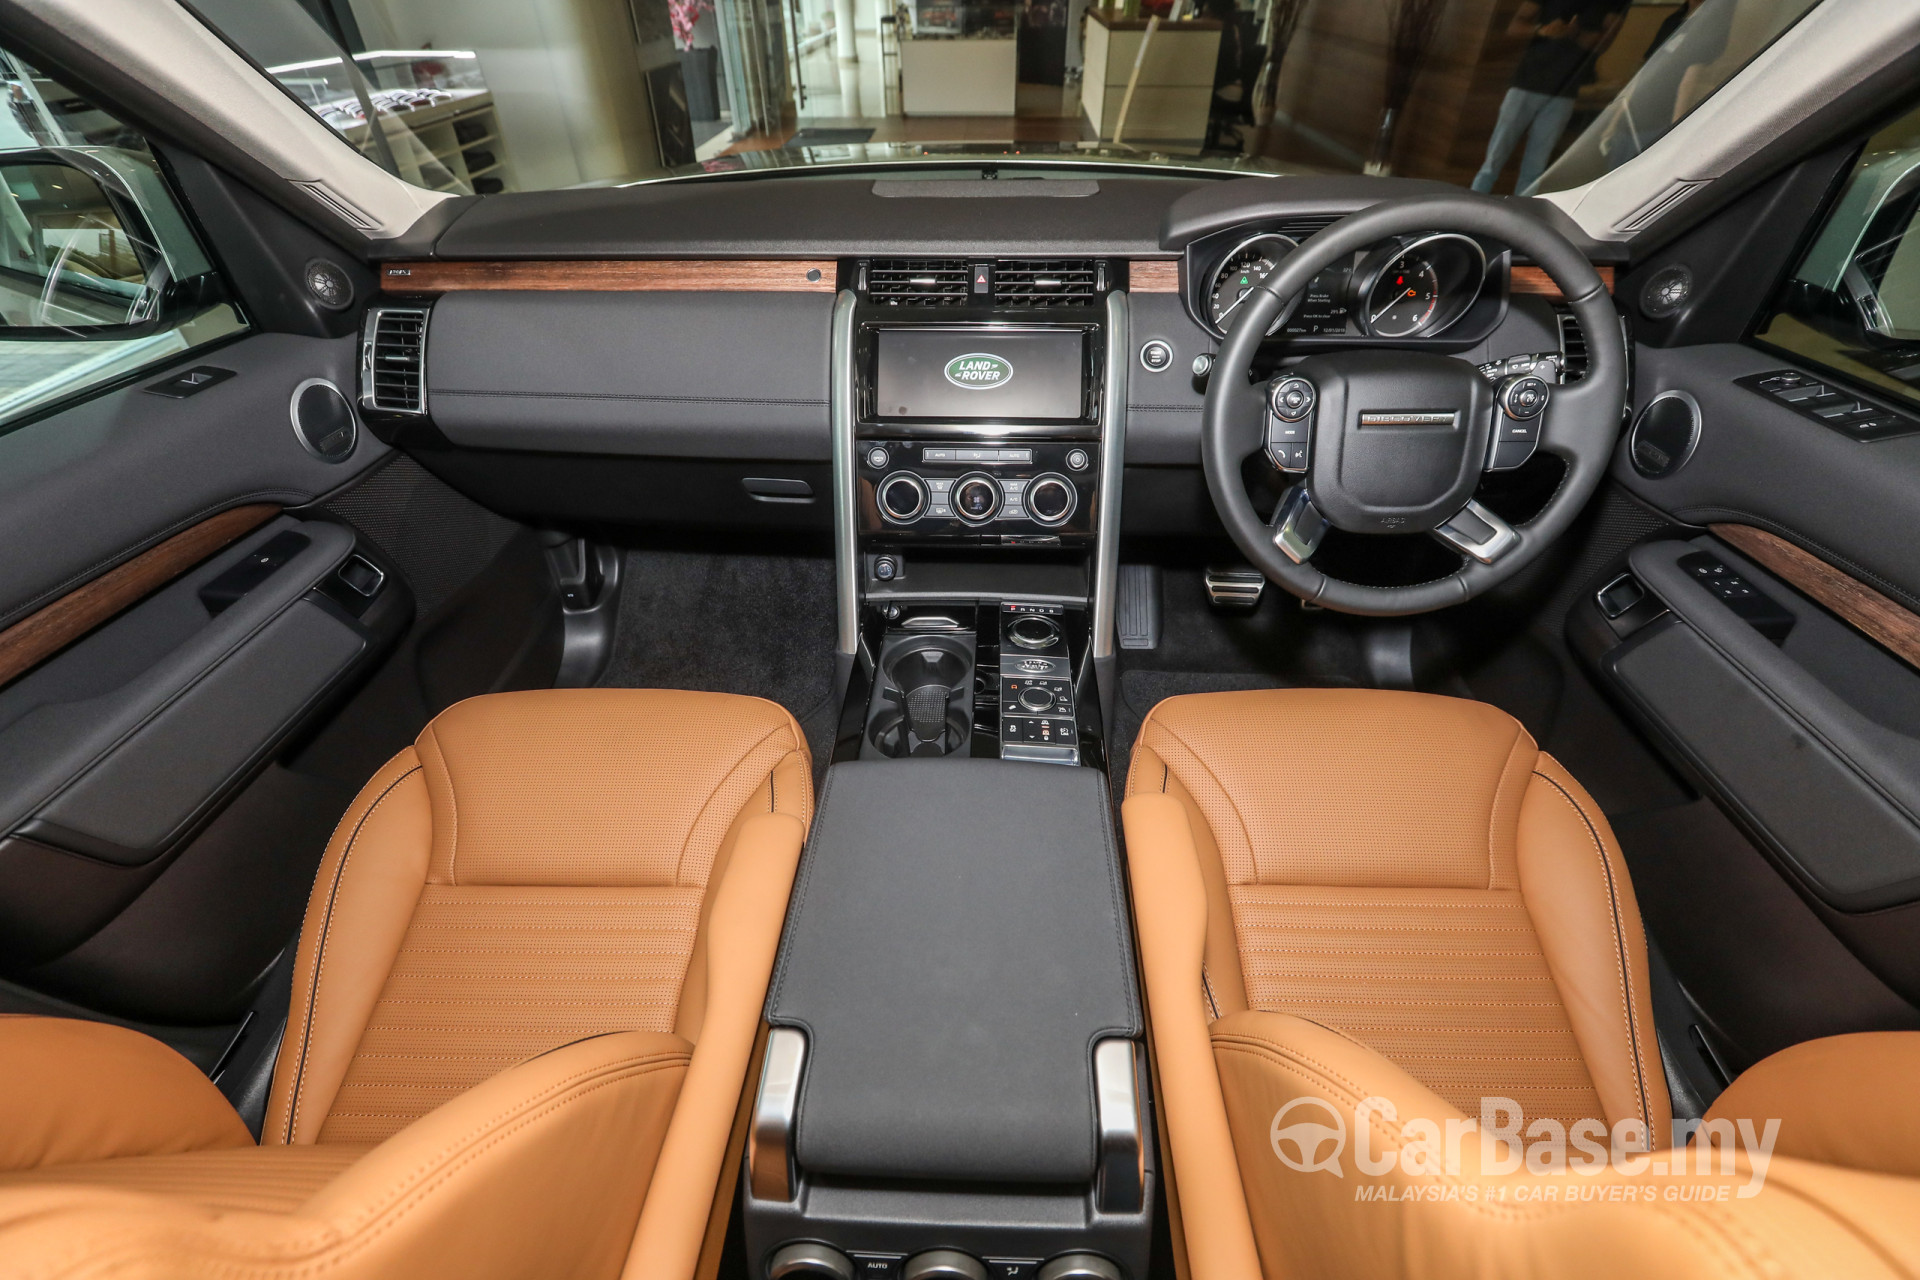 Land Rover Discovery 4 Interior Dimensions Www